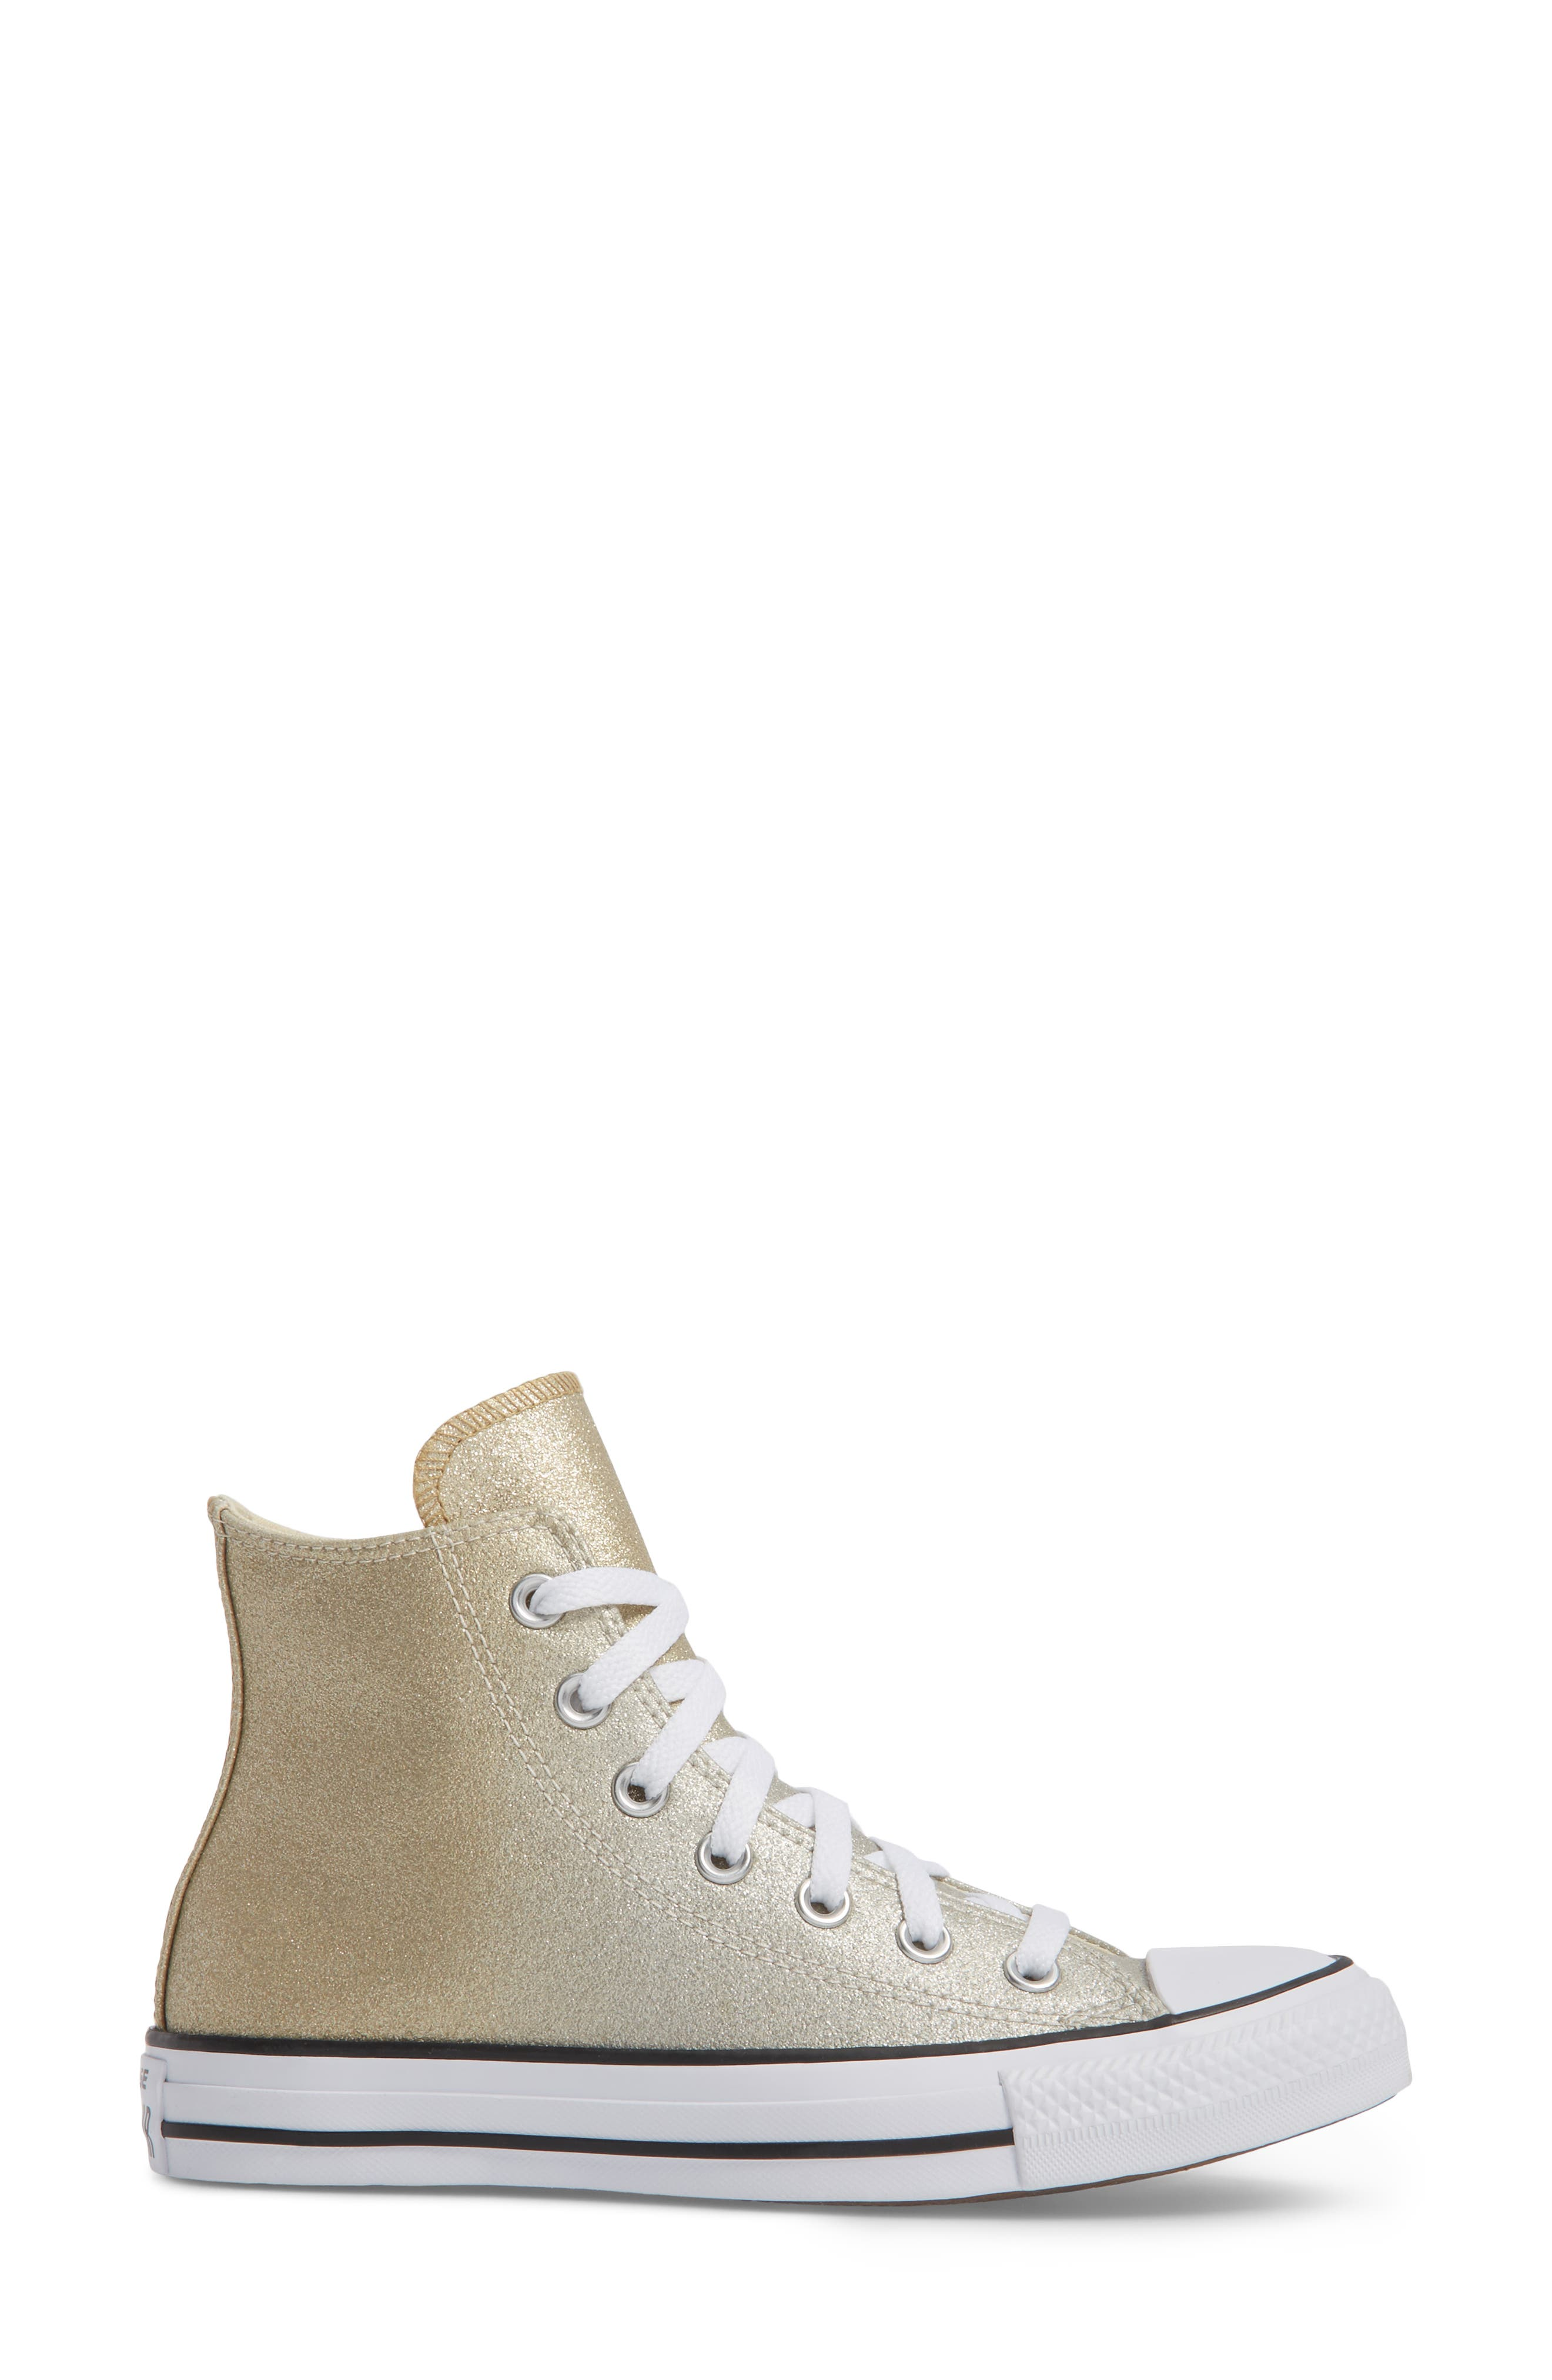 Chuck Taylor<sup>®</sup> All Star<sup>®</sup> Ombré Metallic High Top Sneaker,                             Alternate thumbnail 3, color,                             Light Gold